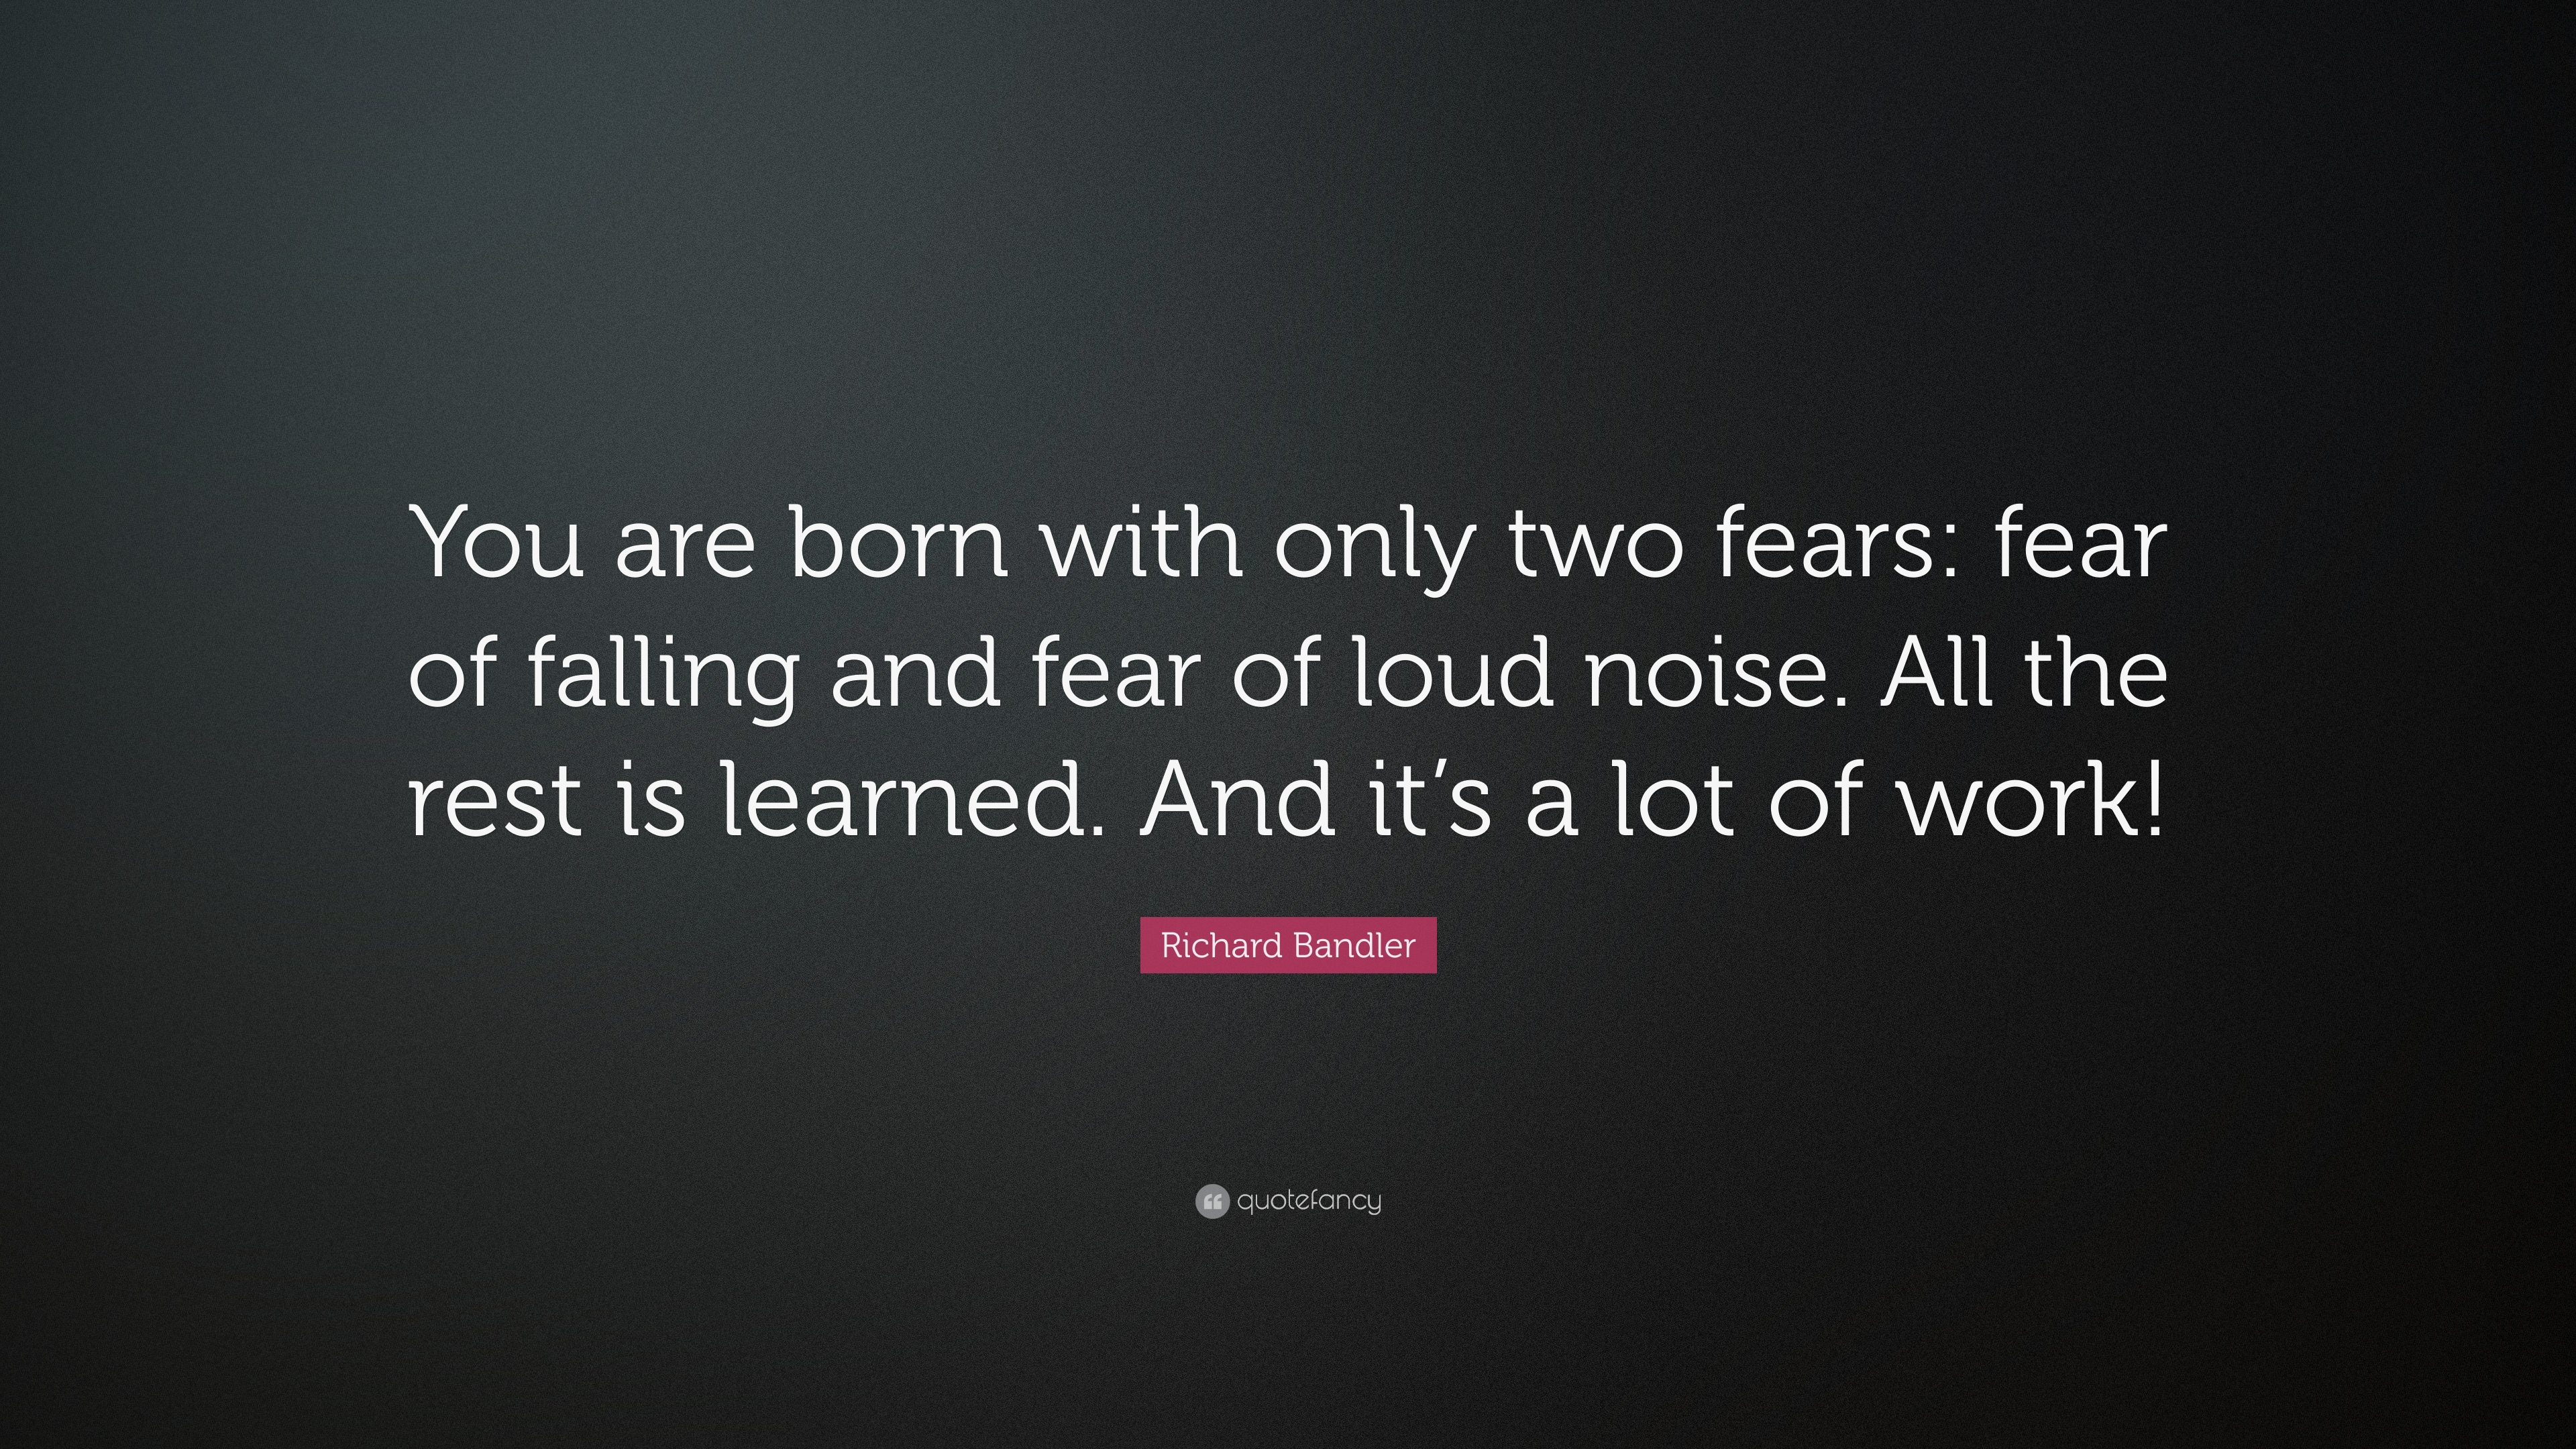 Richard Bandler Quote: U201cYou Are Born With Only Two Fears: Fear Of Falling